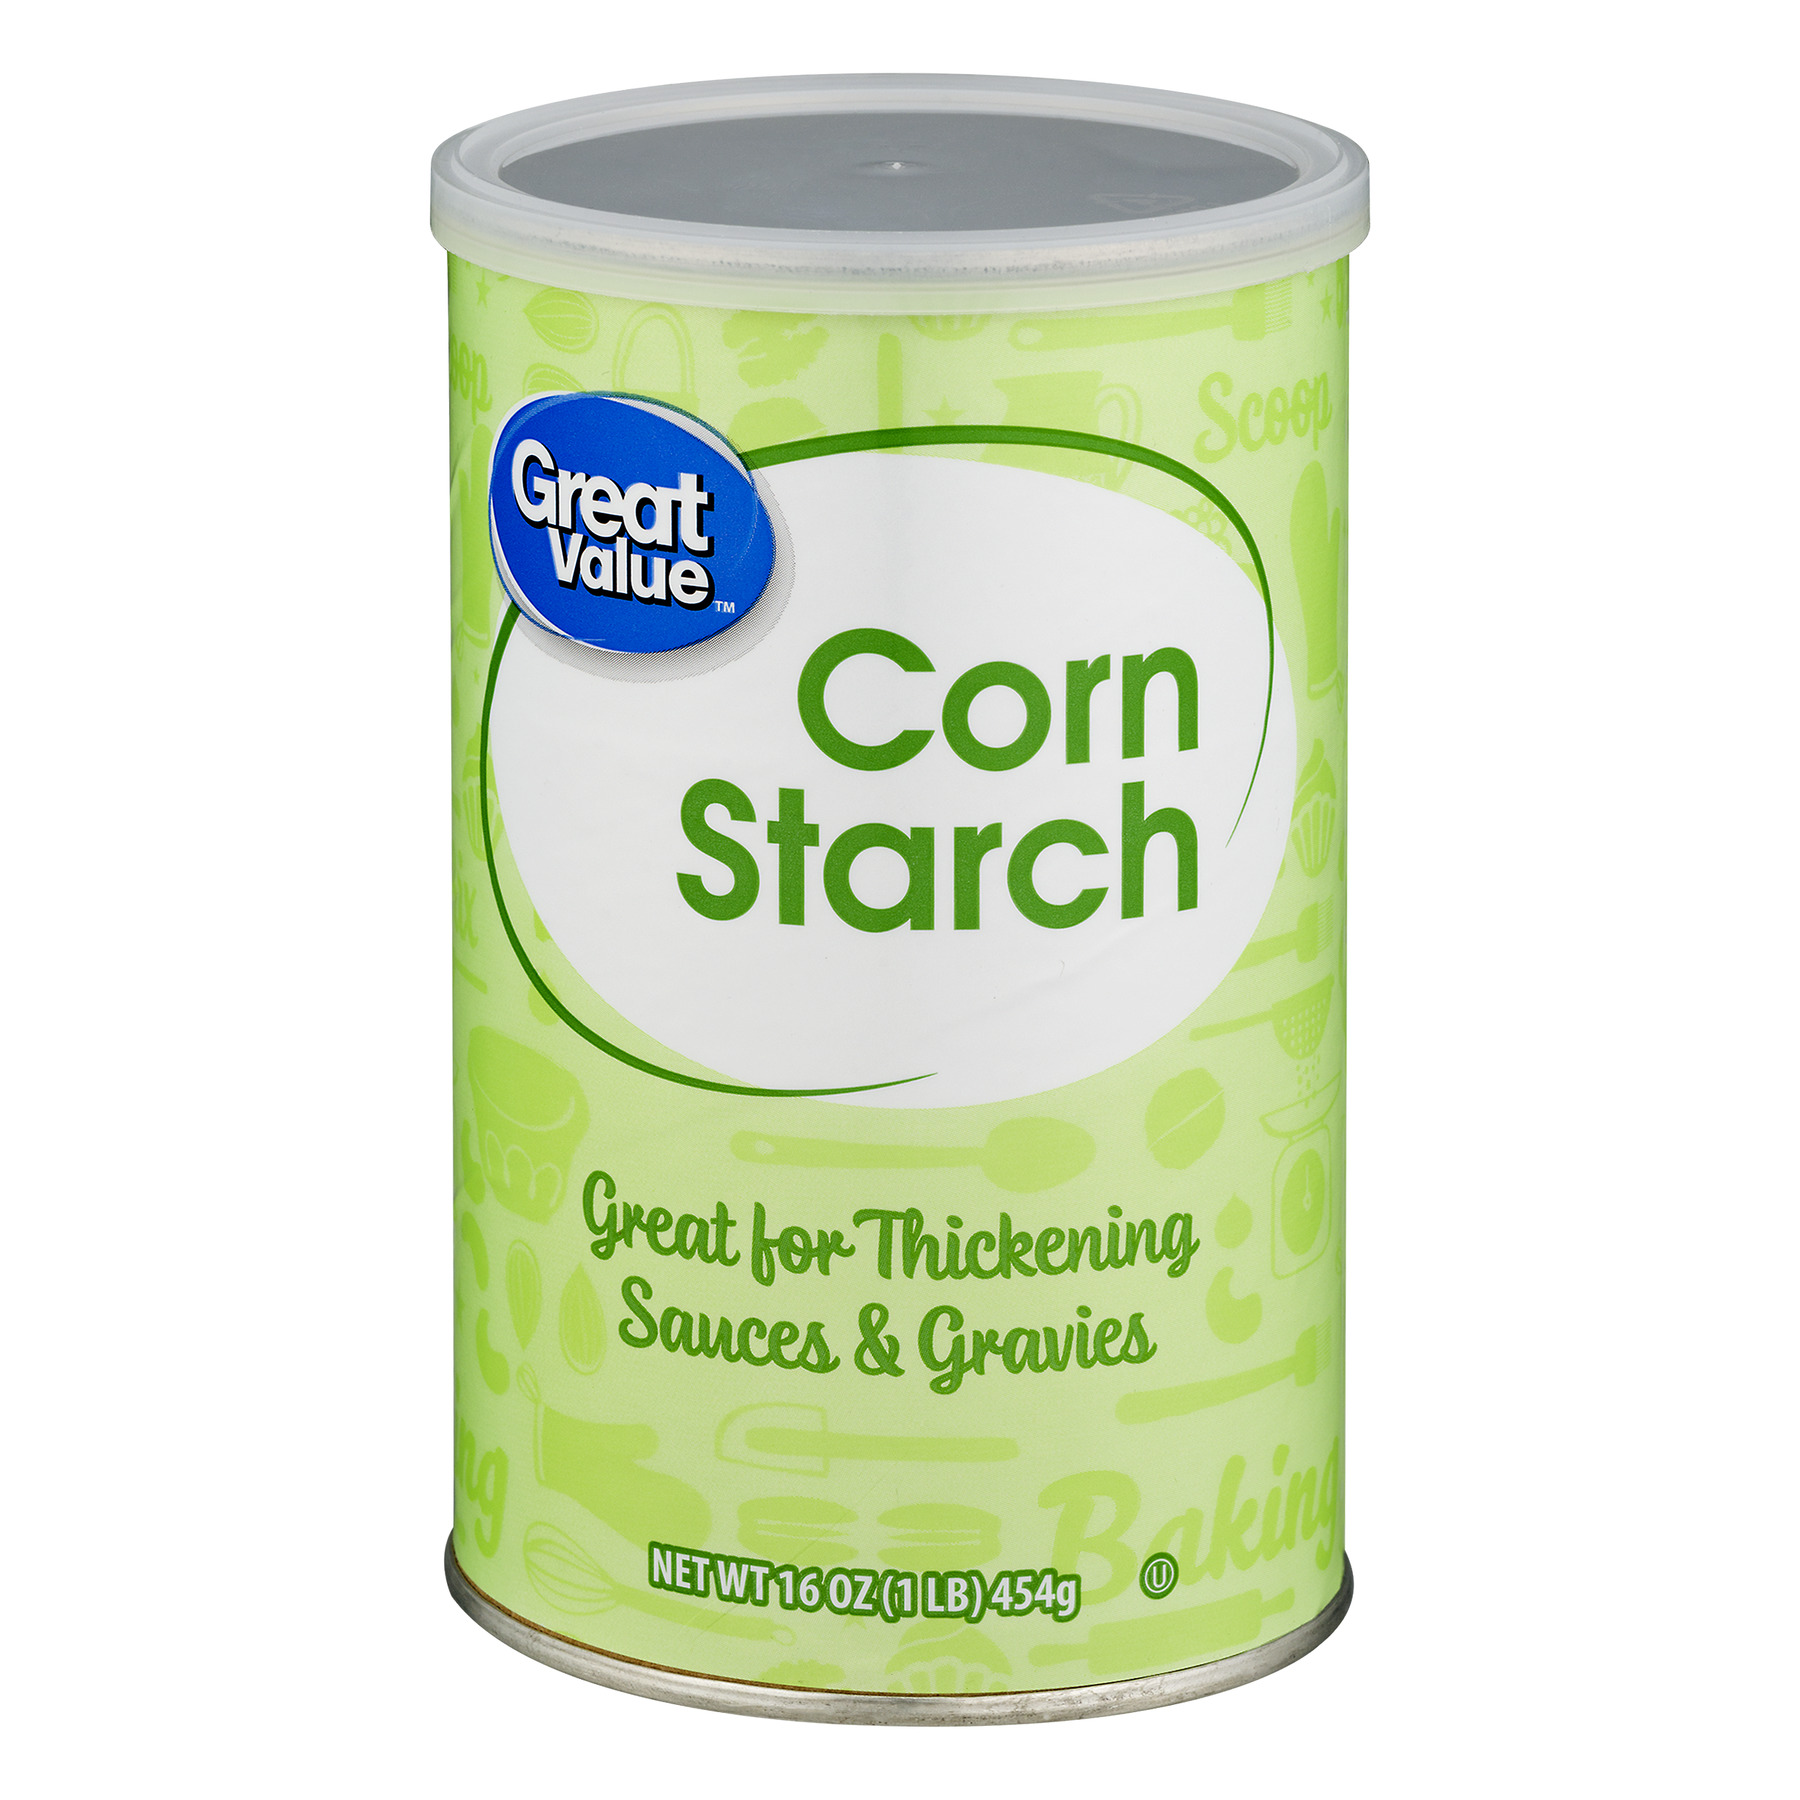 Great Value Corn Starch, 16 oz